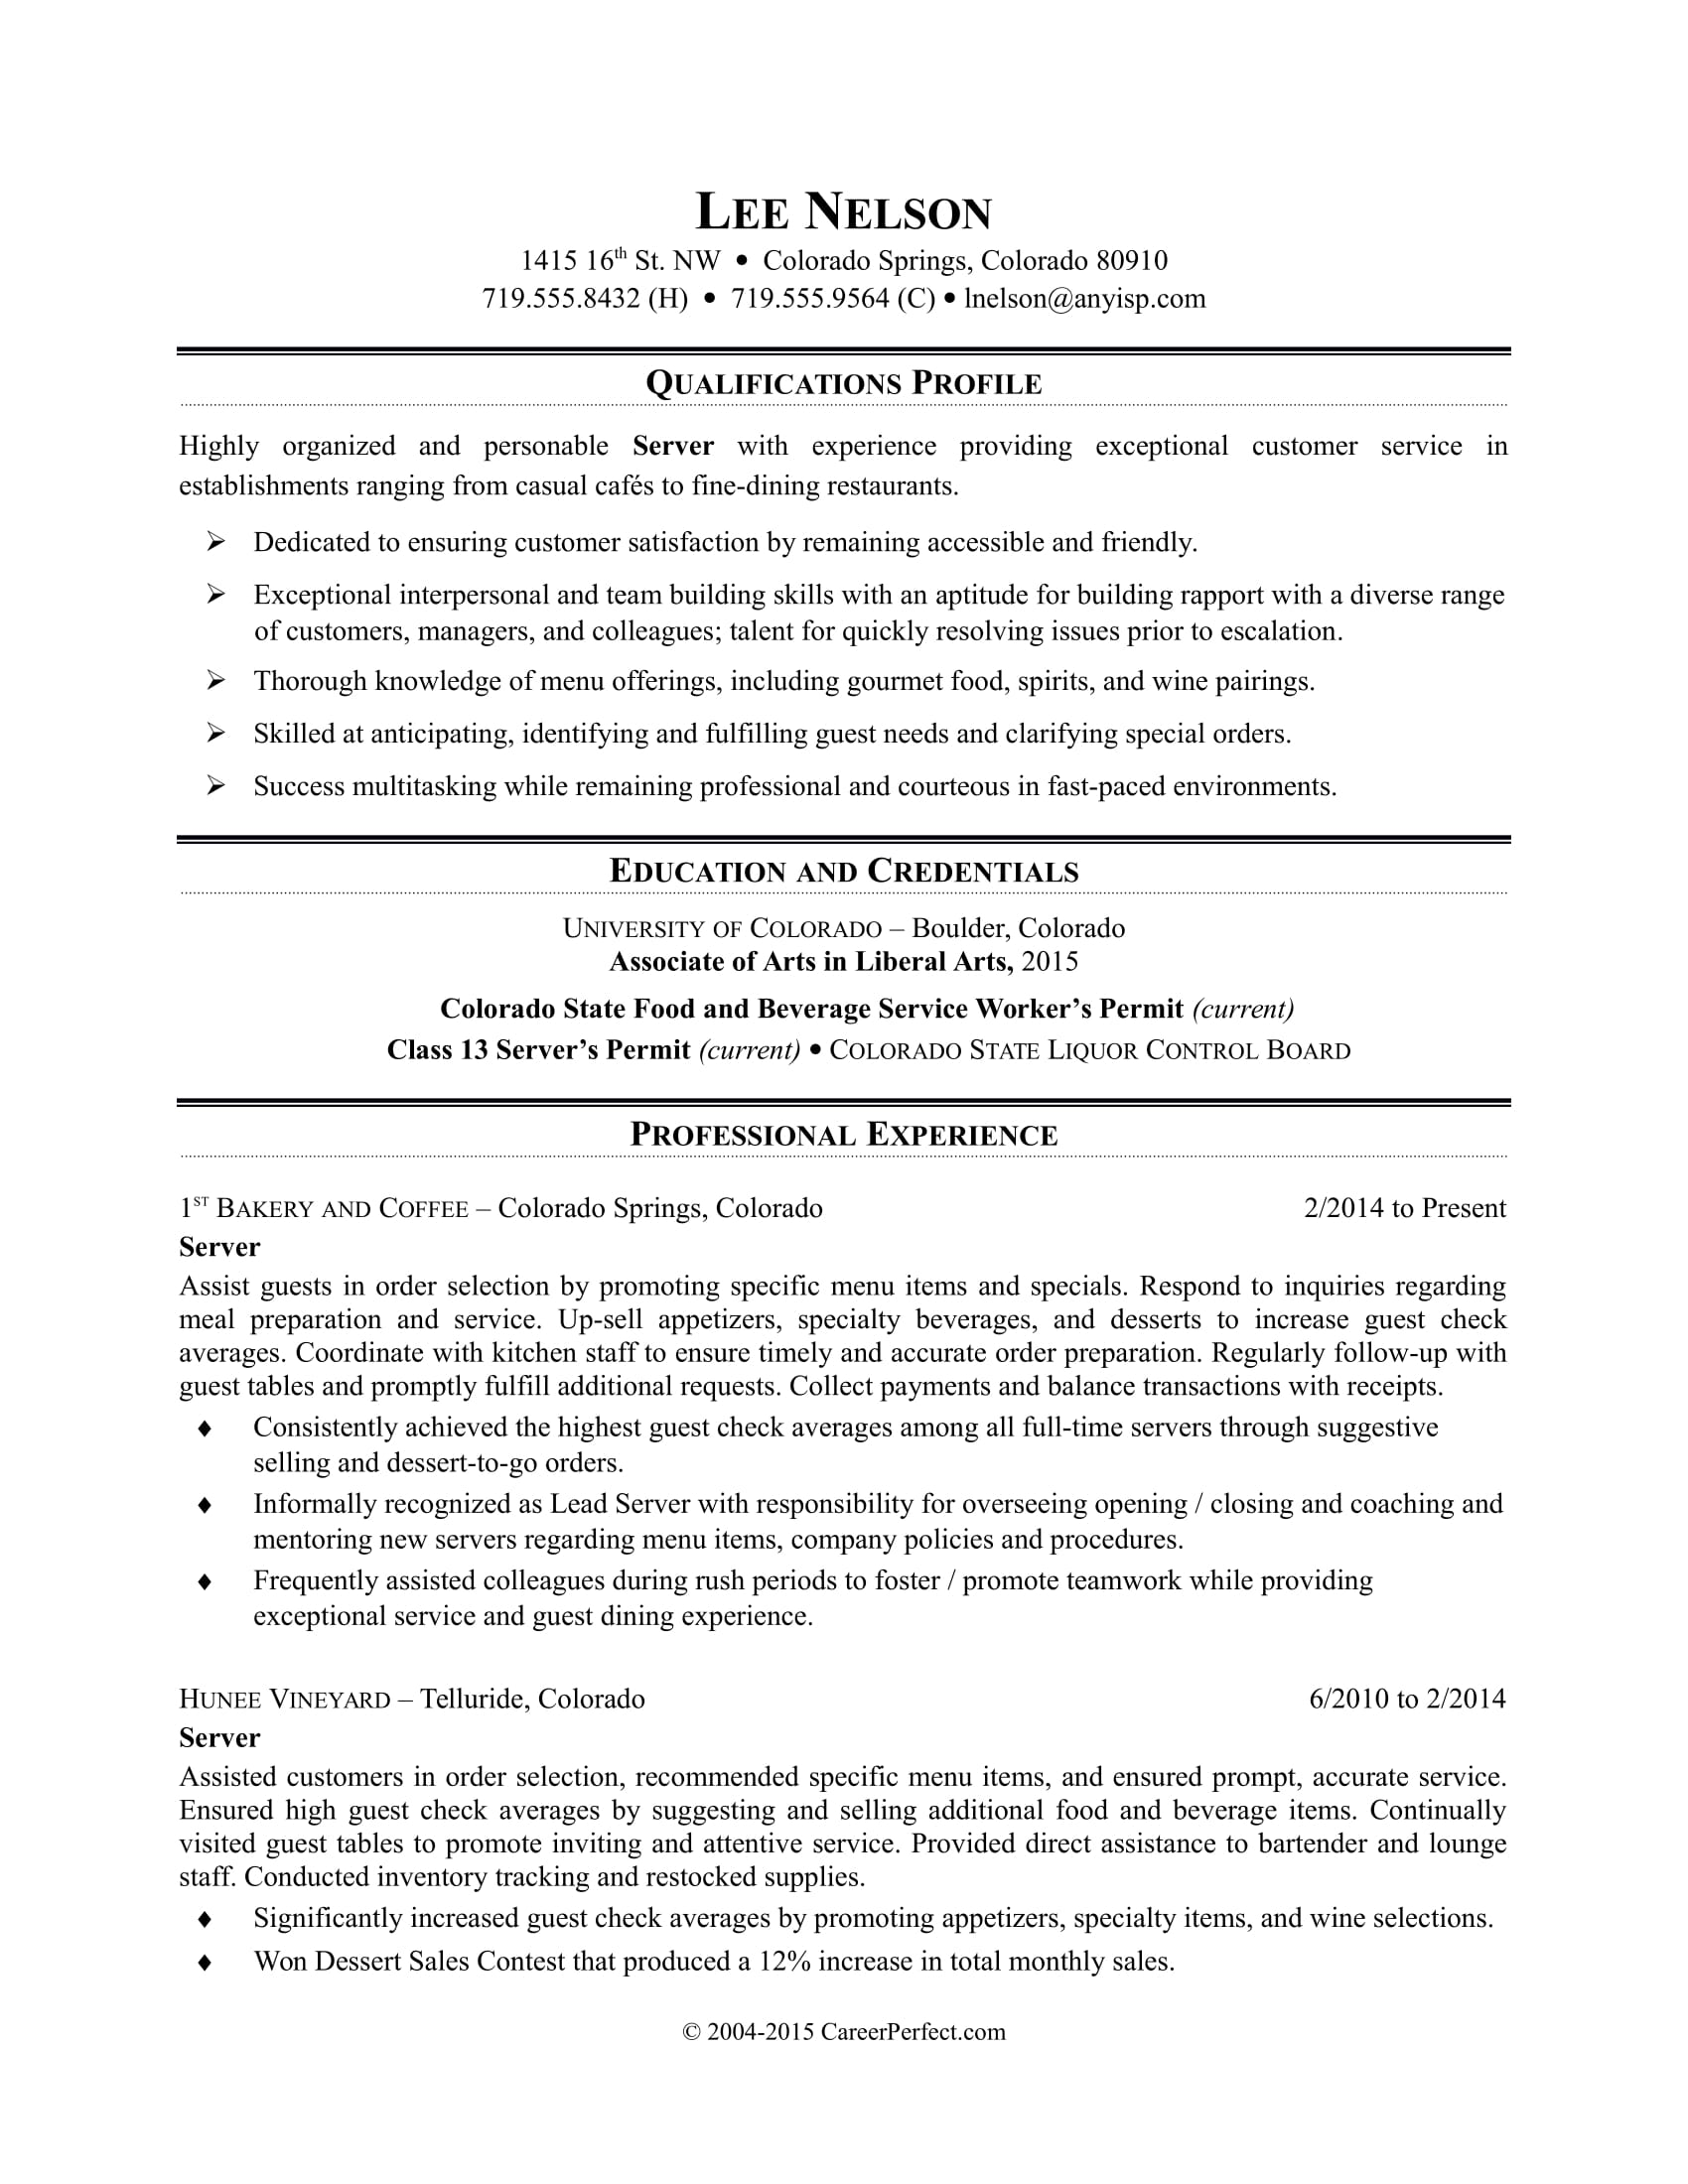 Attractive Sample Resume For A Restaurant Server To Resume Restaurant Server